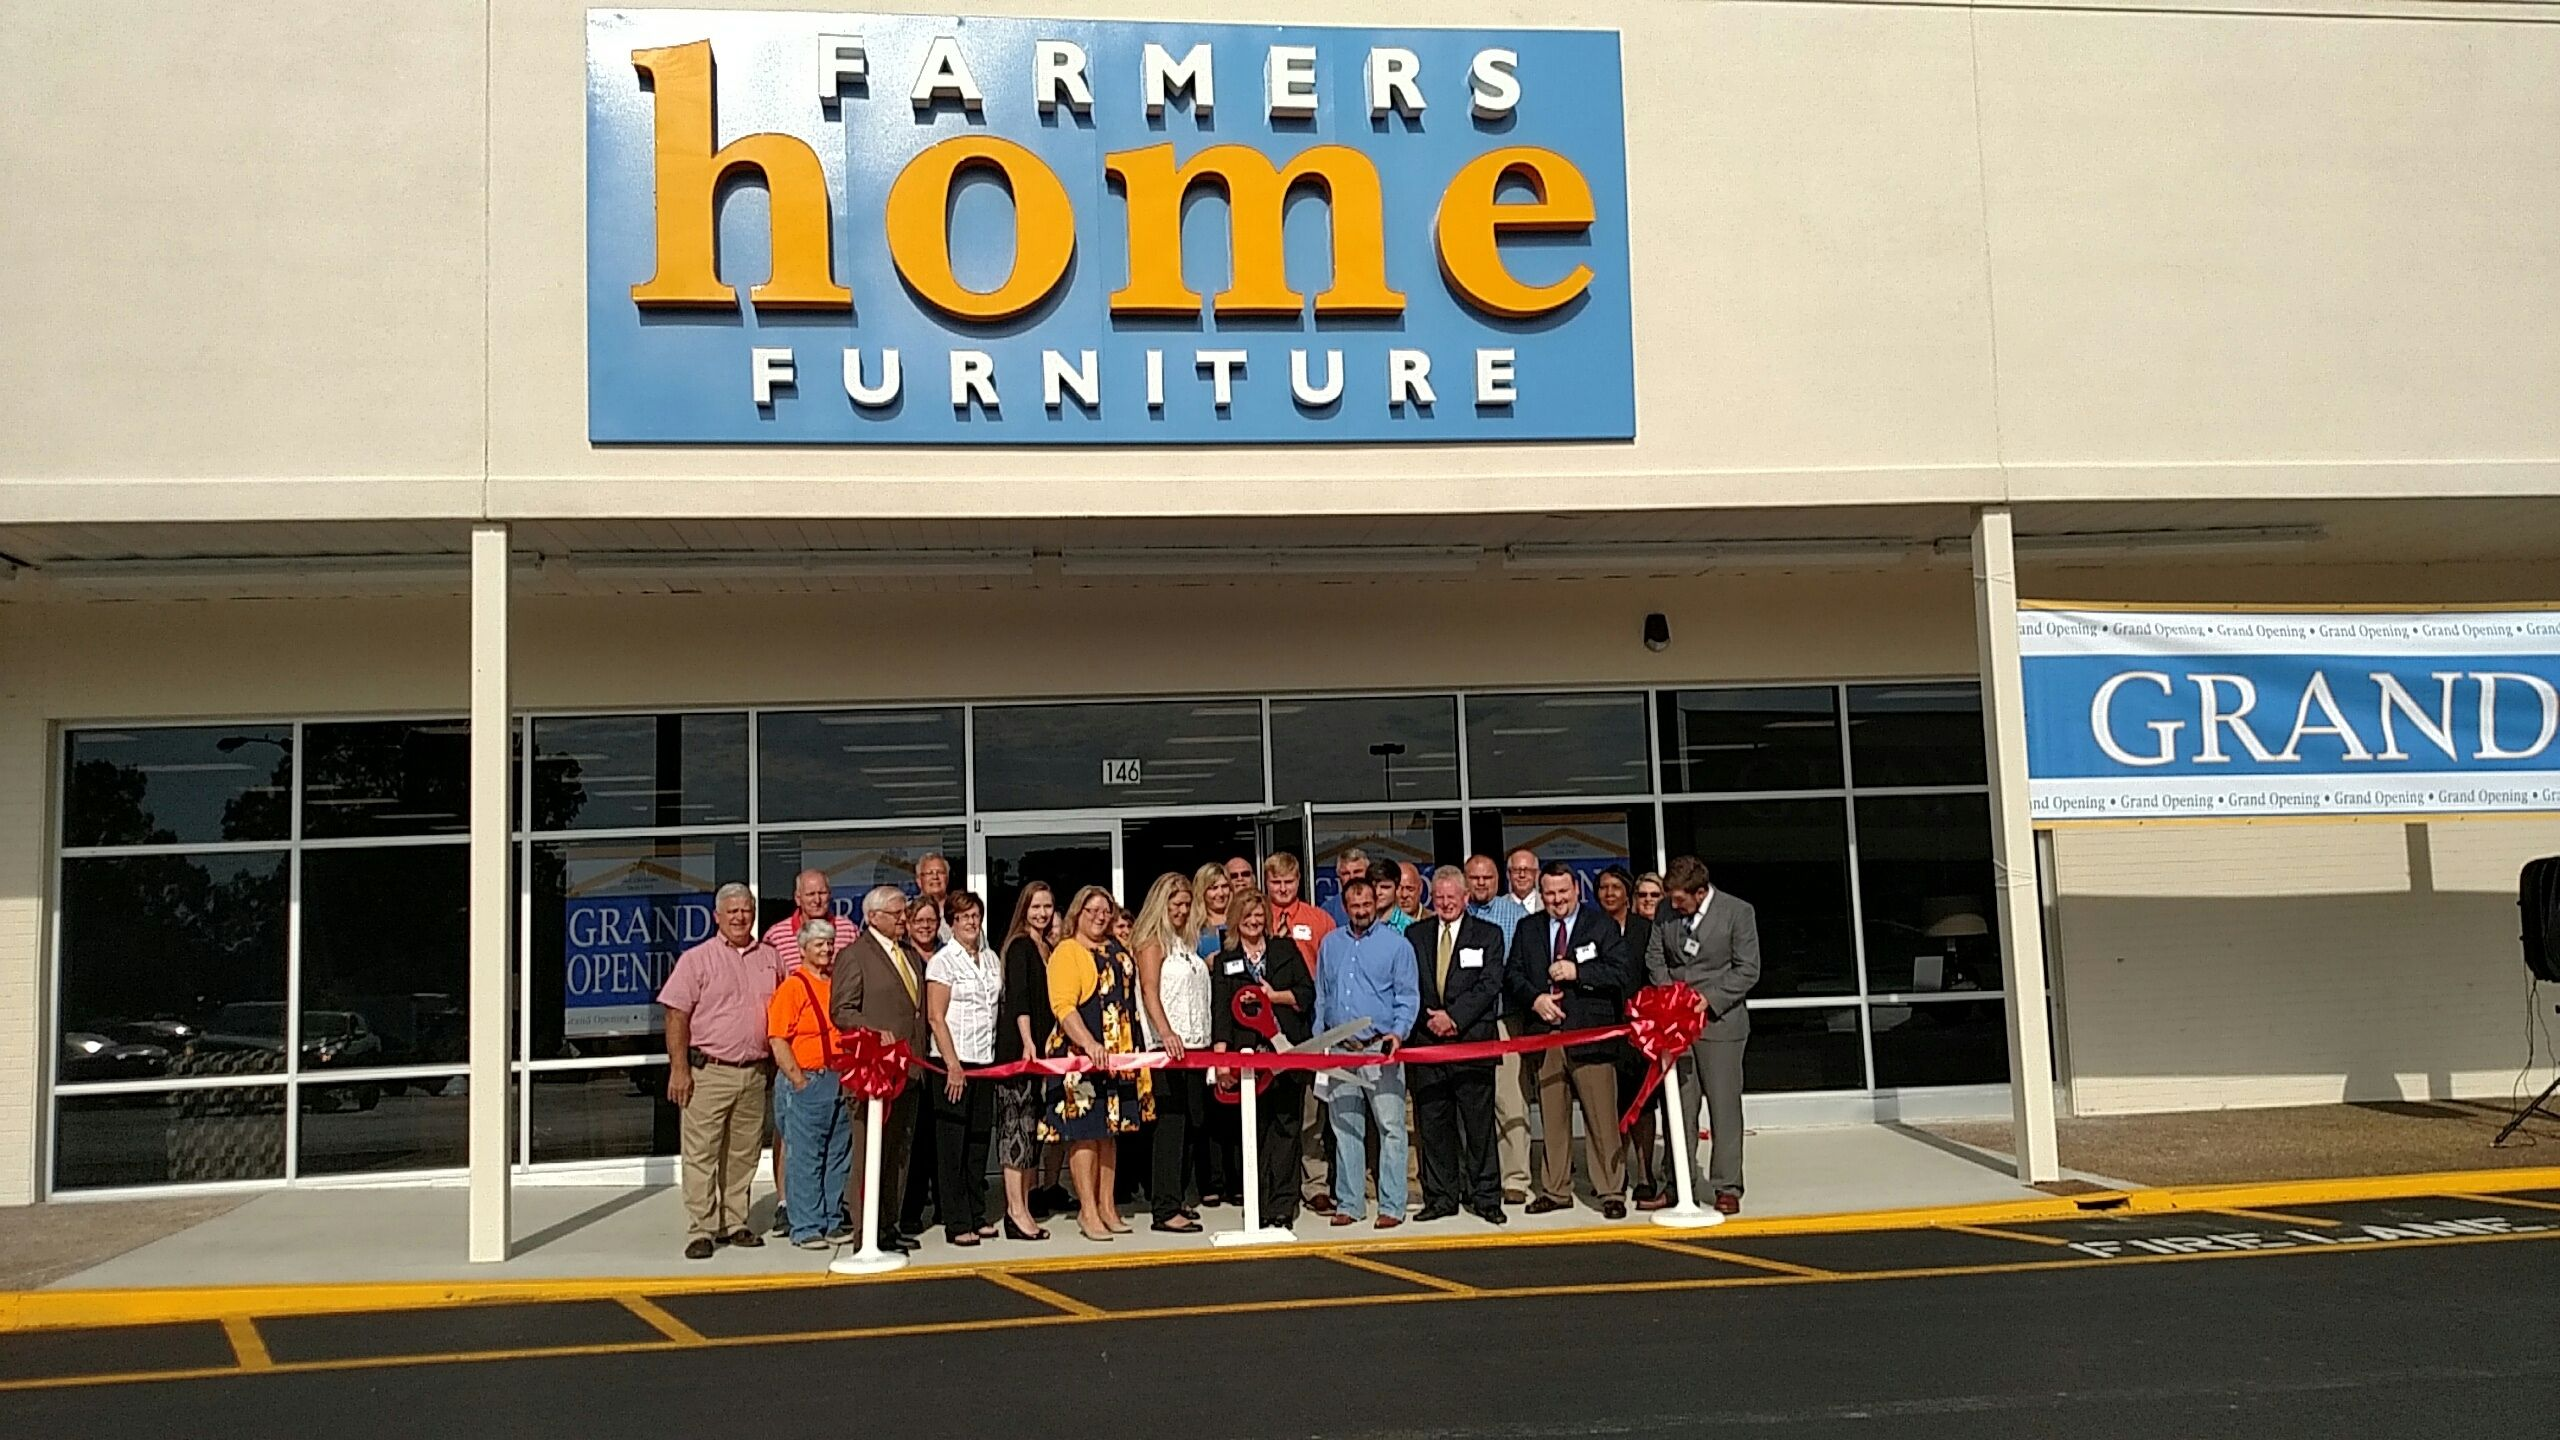 Grand Opening Of Farmers Home Furniture In Lewisburgtn Lewisburg